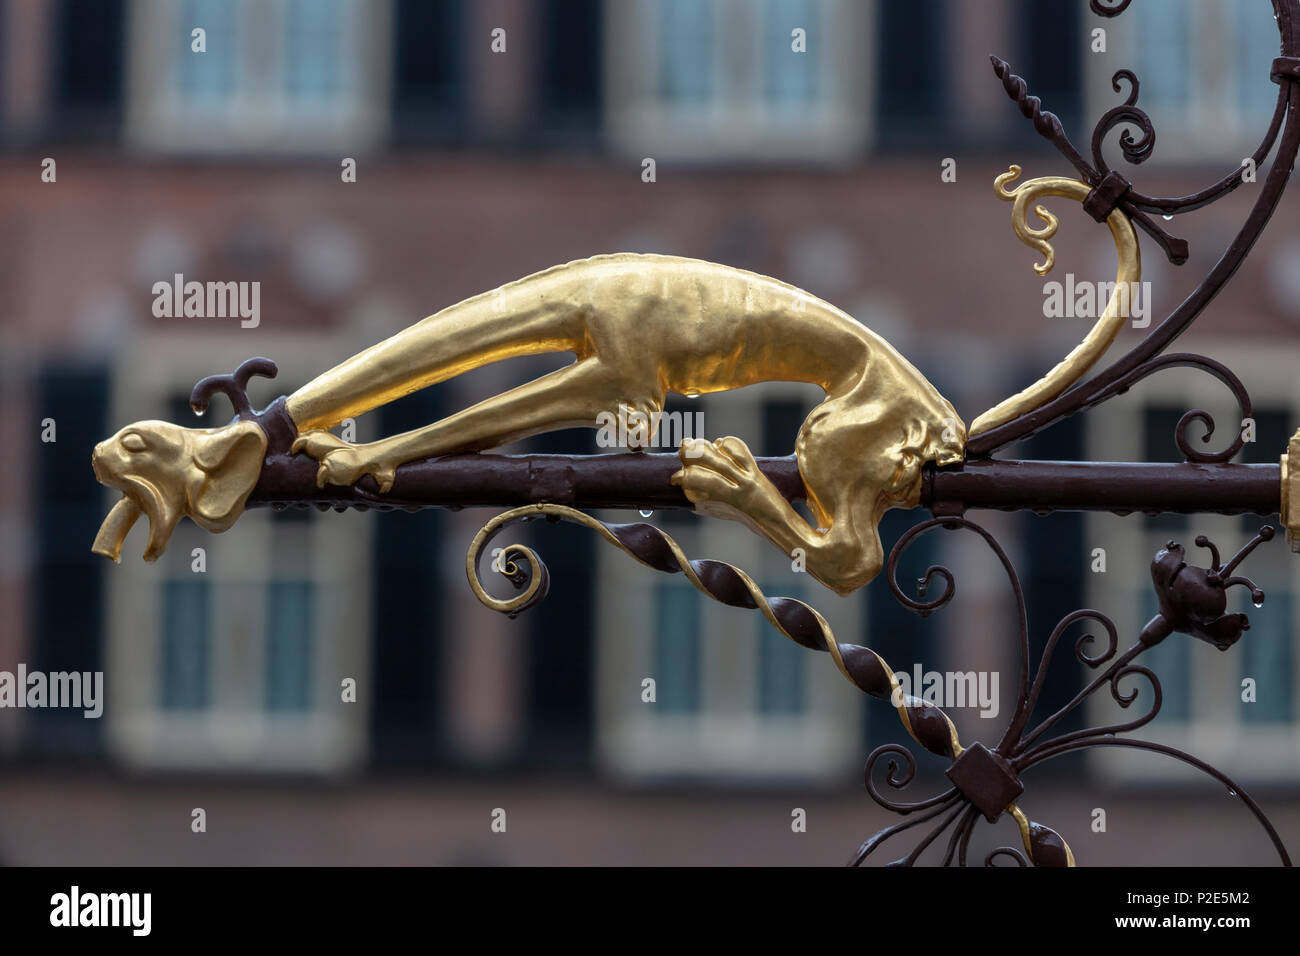 Fanciful Waterspout on Fountain in Courtyard of Binnenhof in the Hague, Netherlands - Stock Image